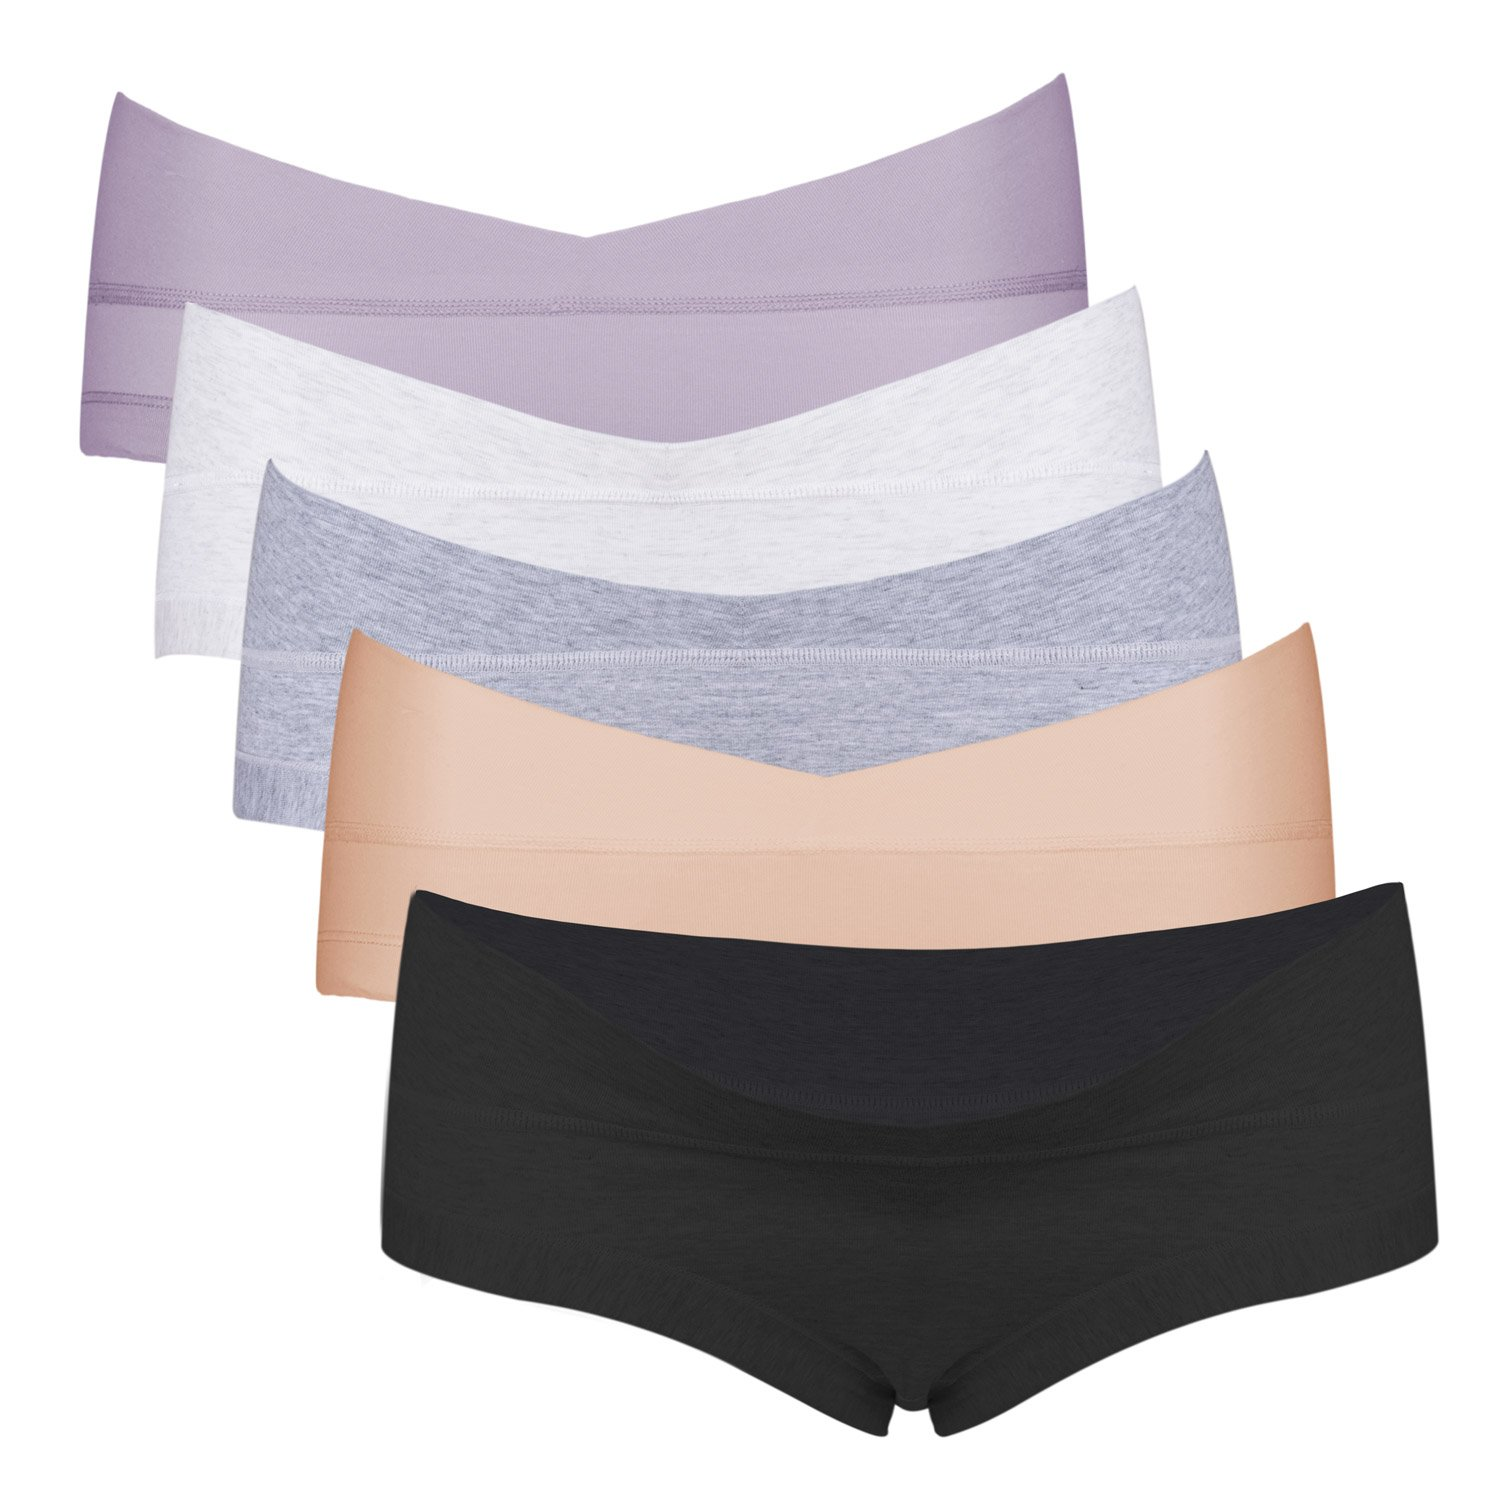 Intimate Portal Under The Bump Cotton Maternity Pregnancy Panties Pack 5-Pk Black Soft Gray Beige Heather Gray Purple L